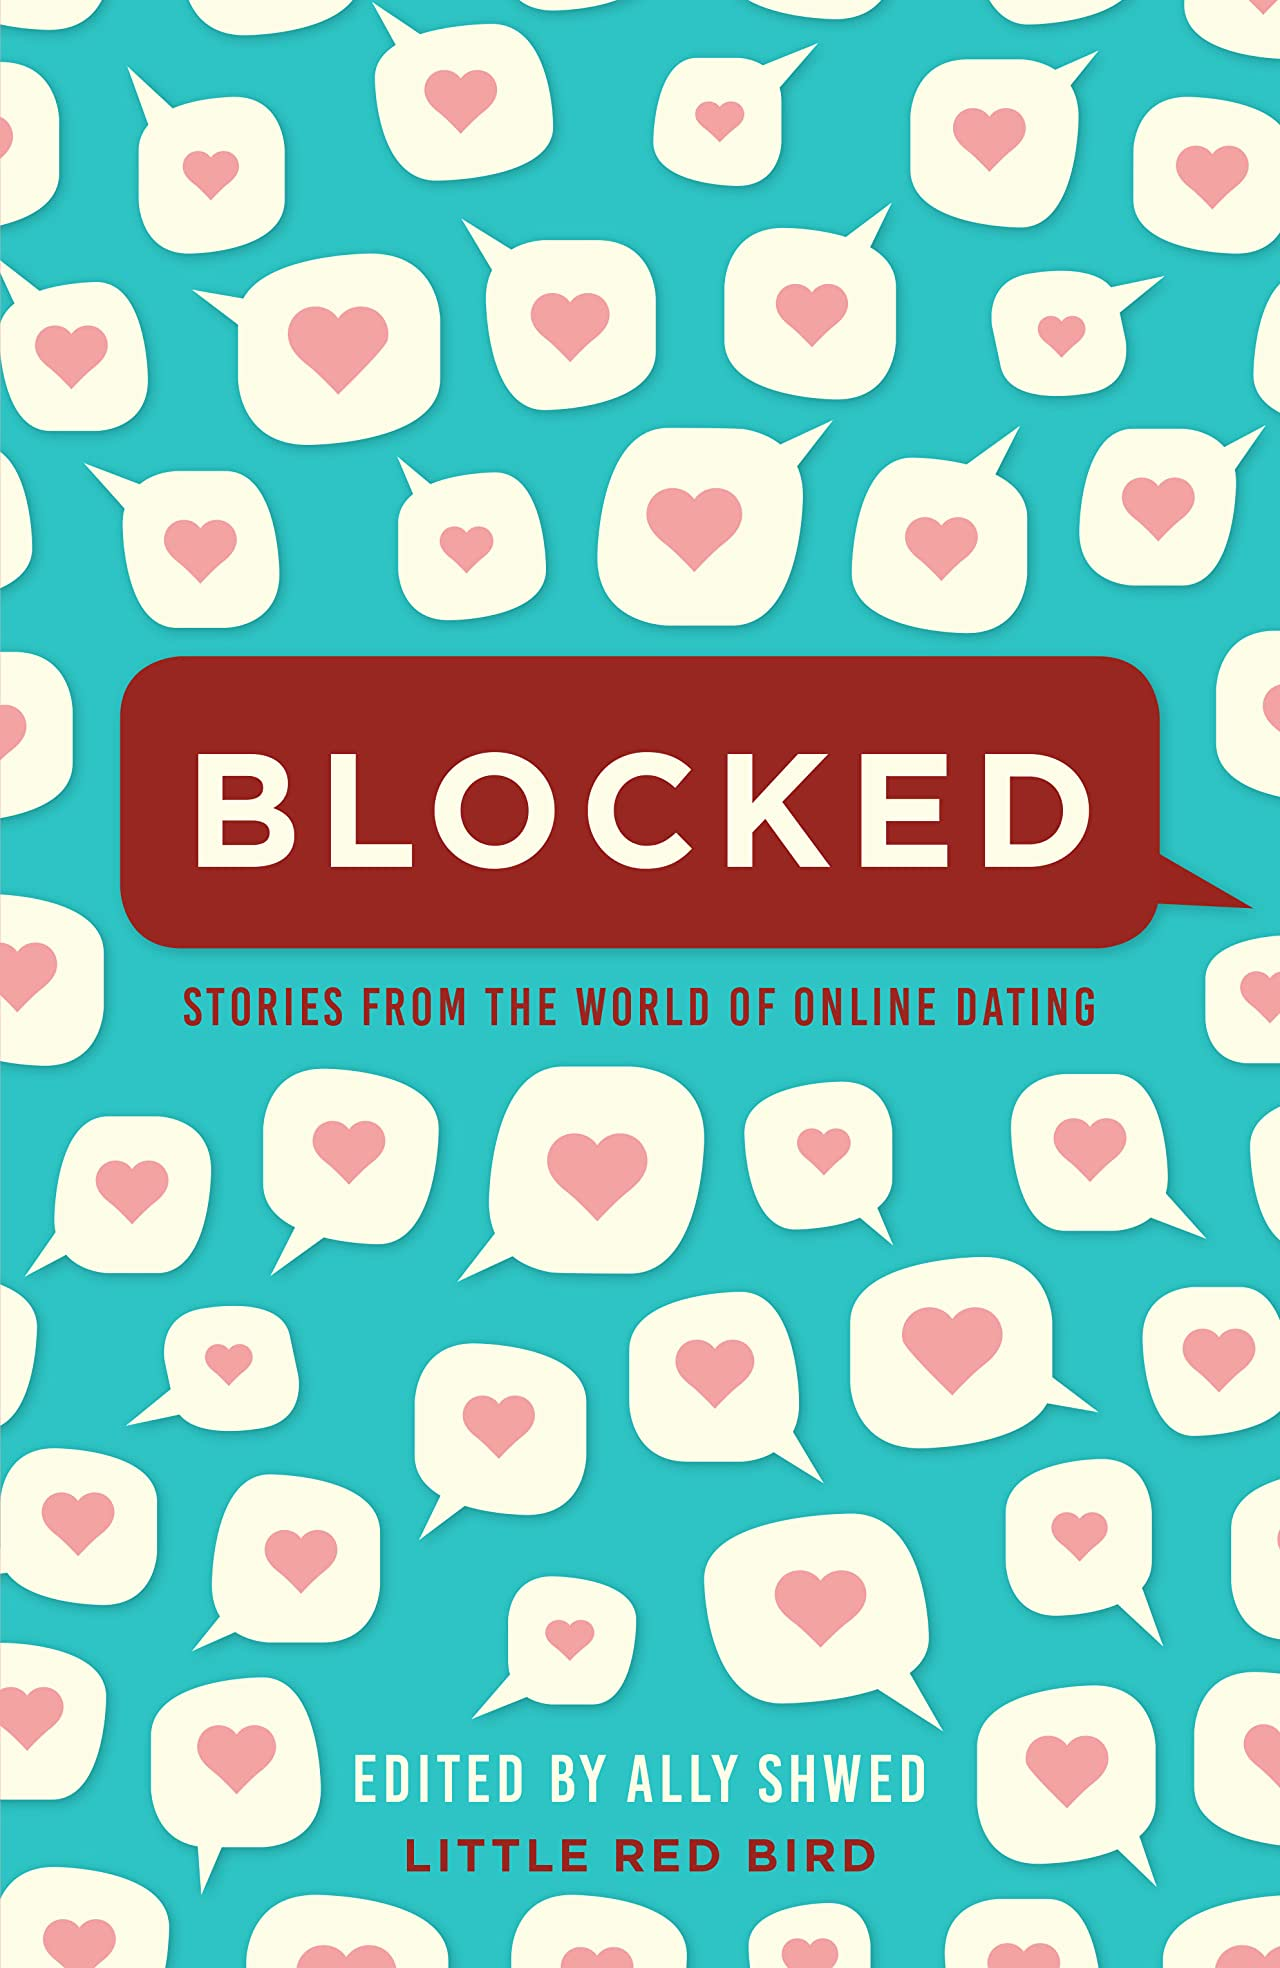 Blocked: Stories from the World of Online Dating